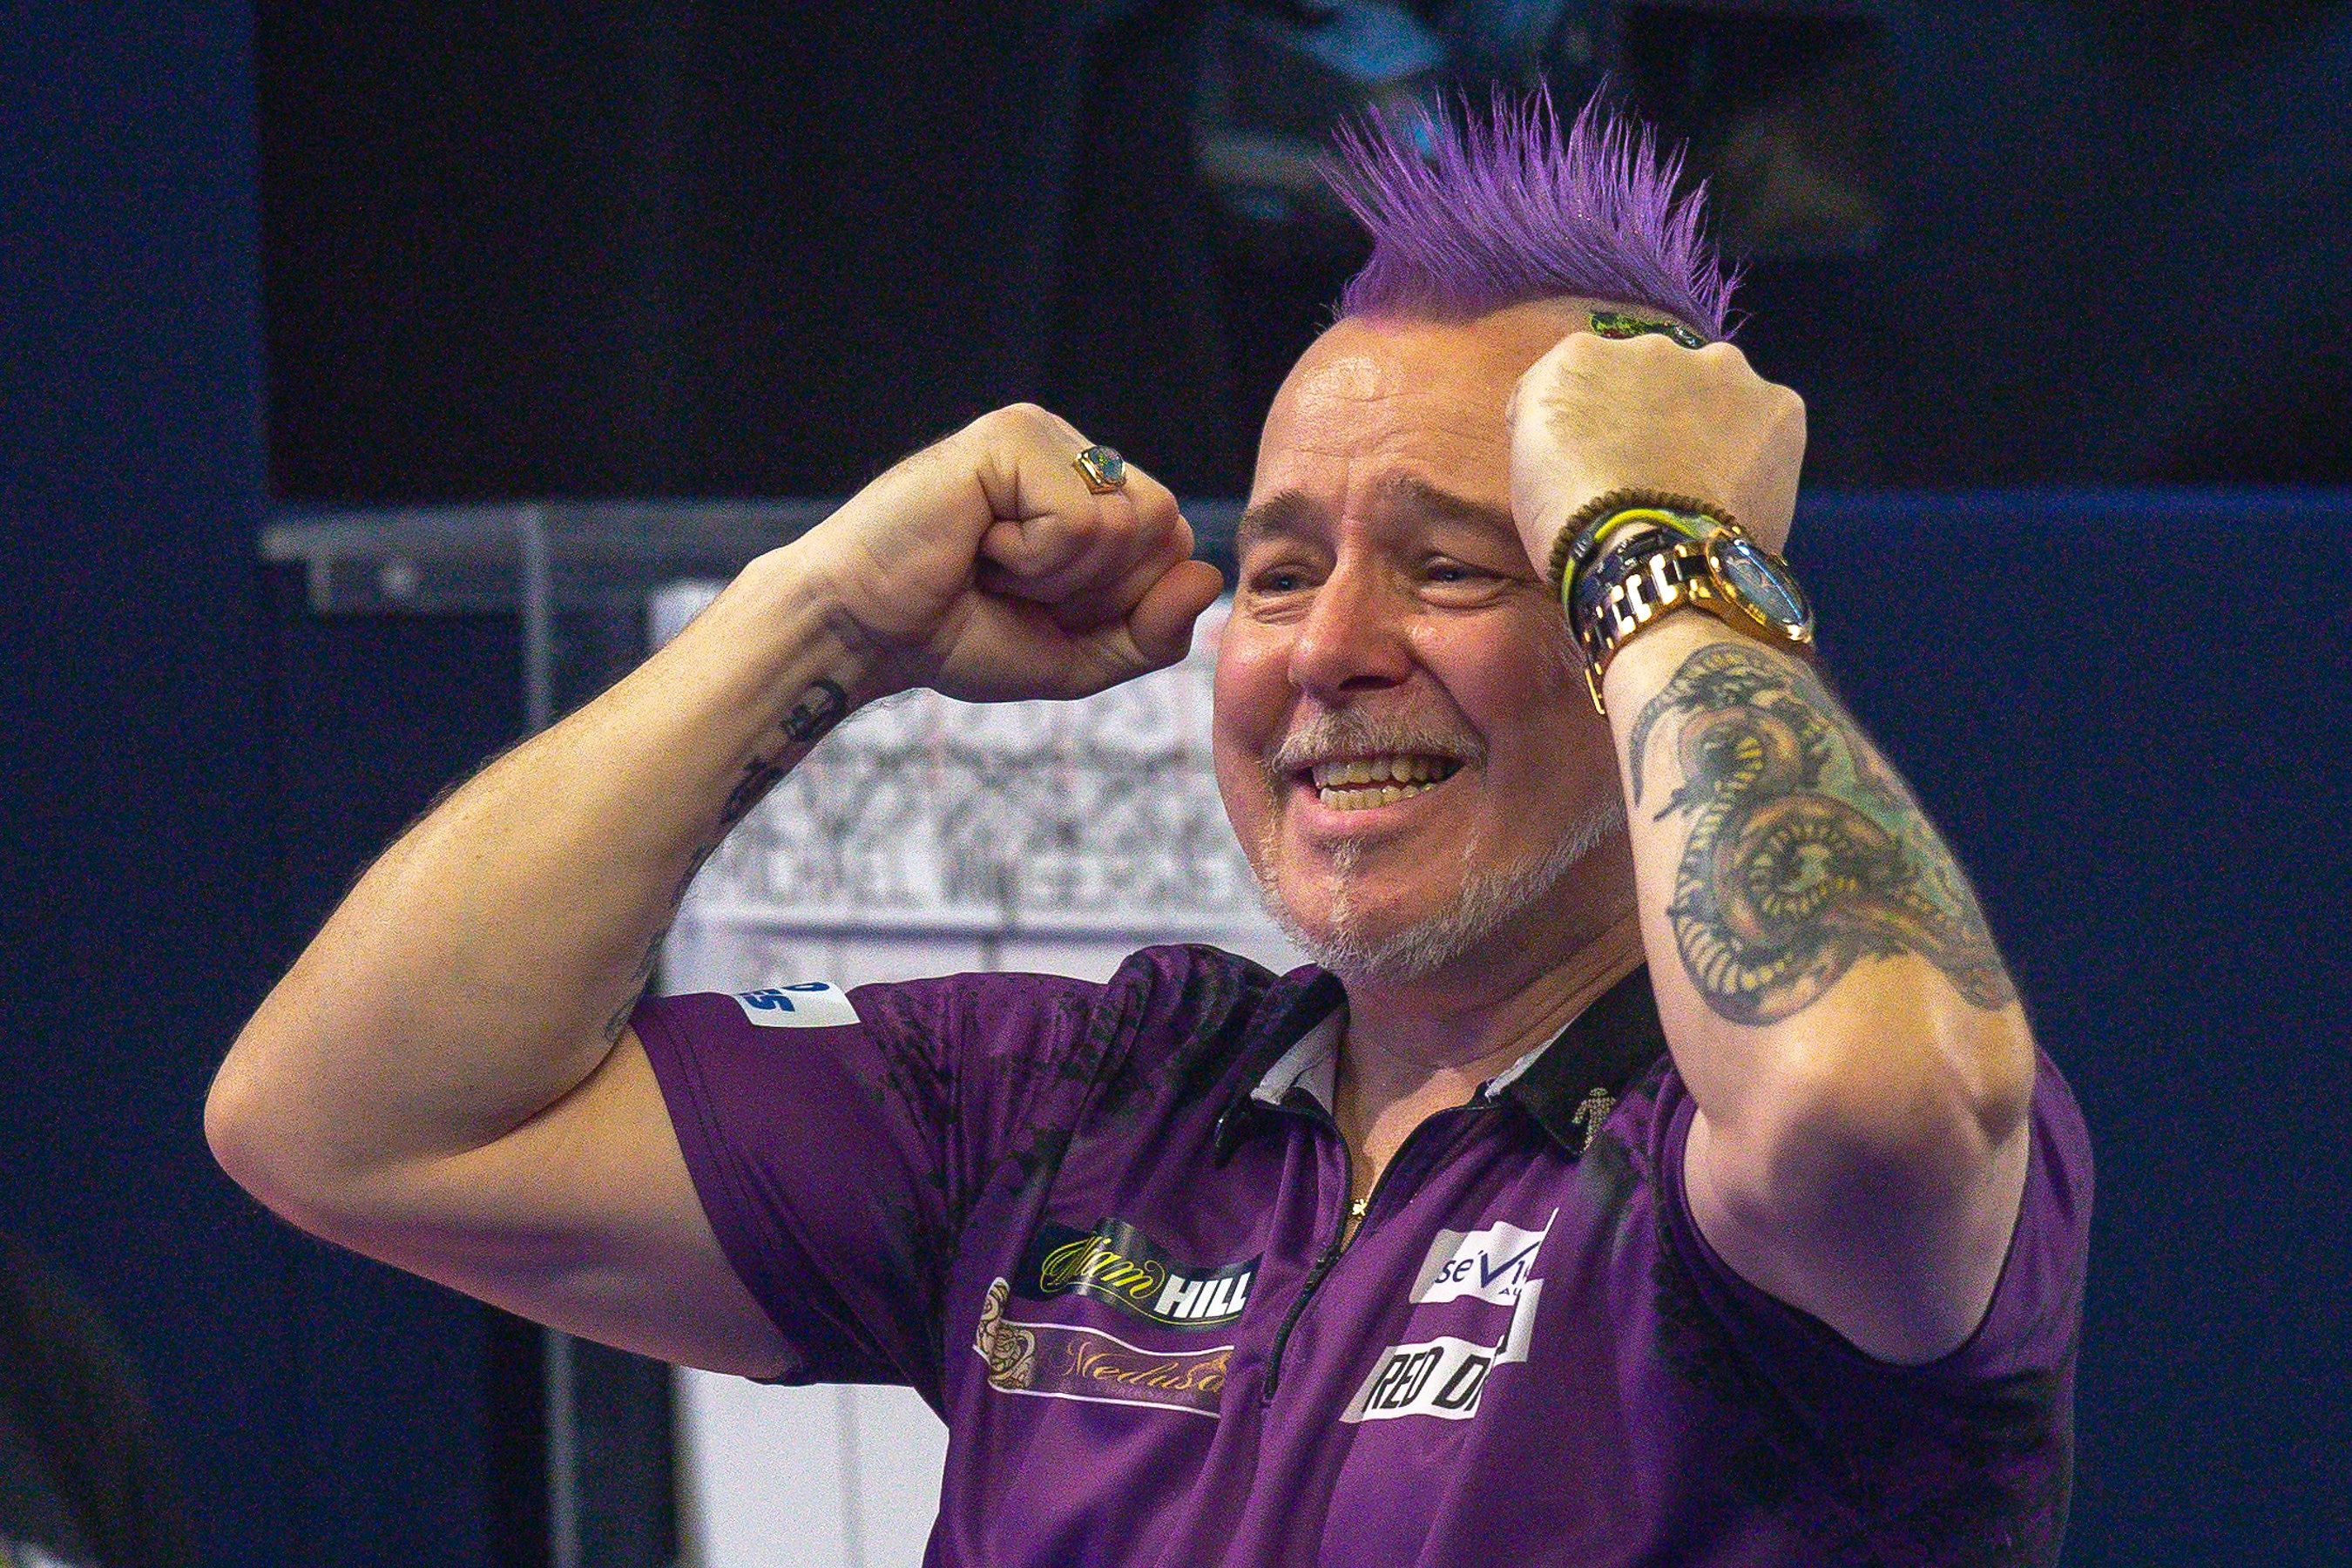 Peter Wright celebrates his win